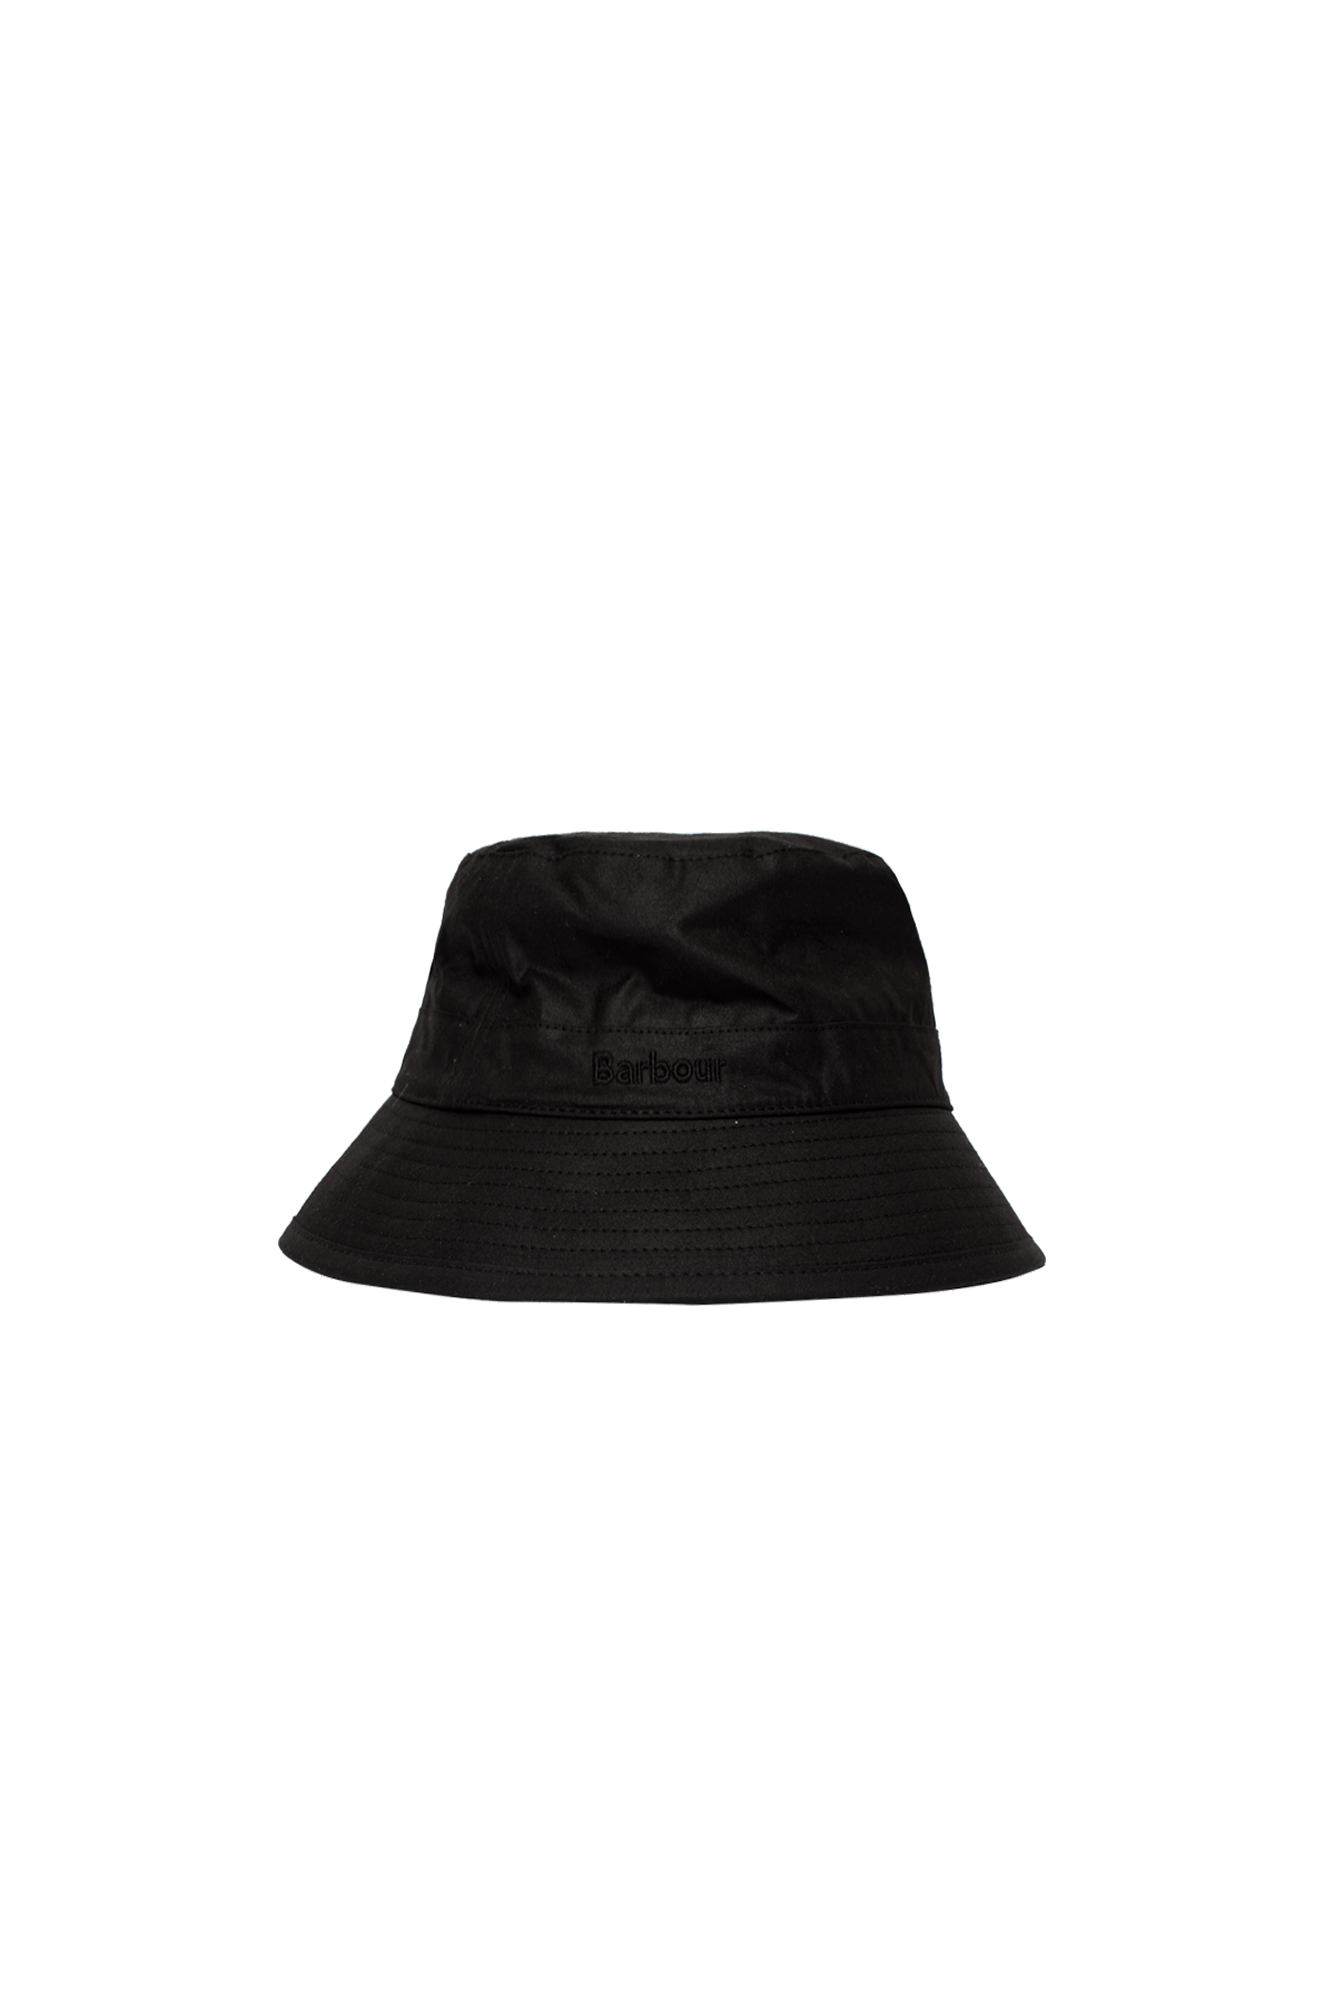 Barbour Hats Wax Sports Hat Black MHA0001#000#BK91#M - One Block Down